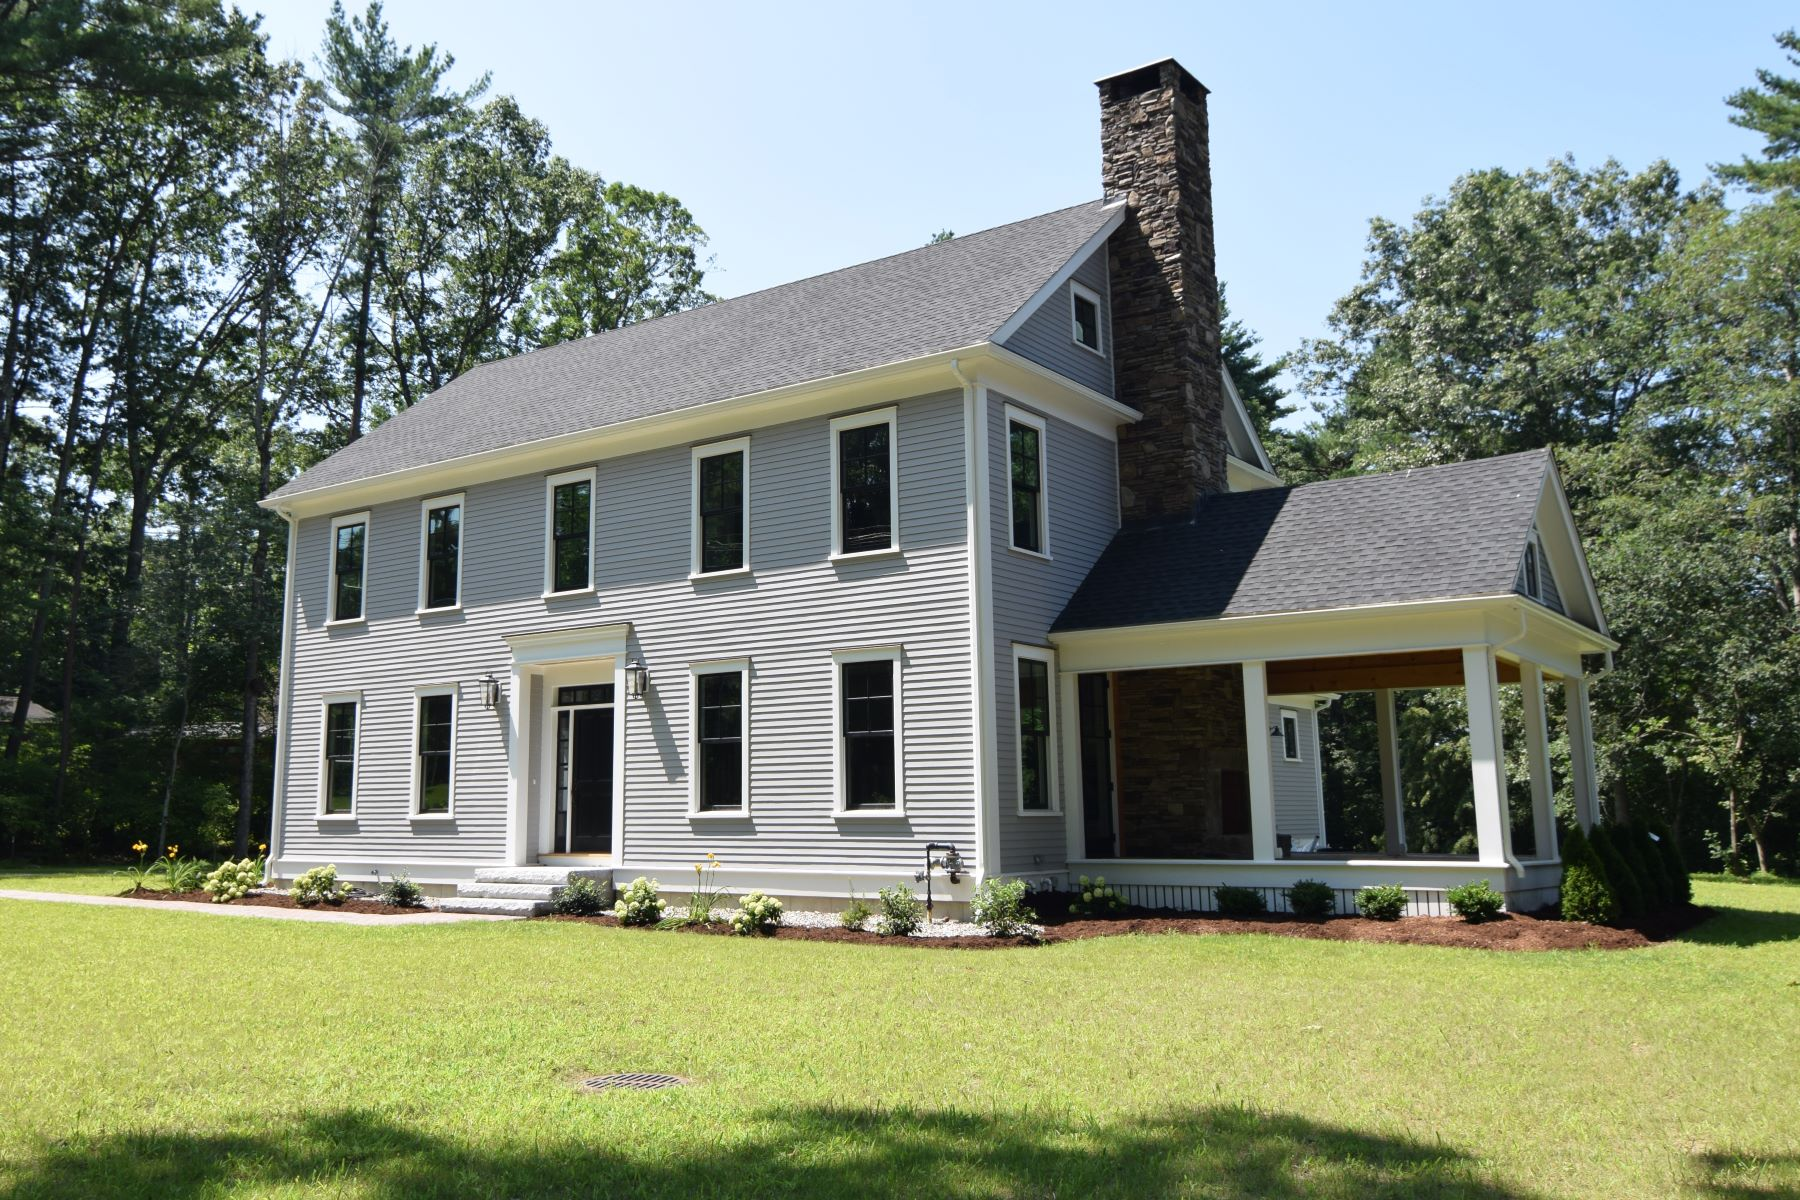 Single Family Home for Sale at 211 Park Lane Concord, Massachusetts, 01742 United States